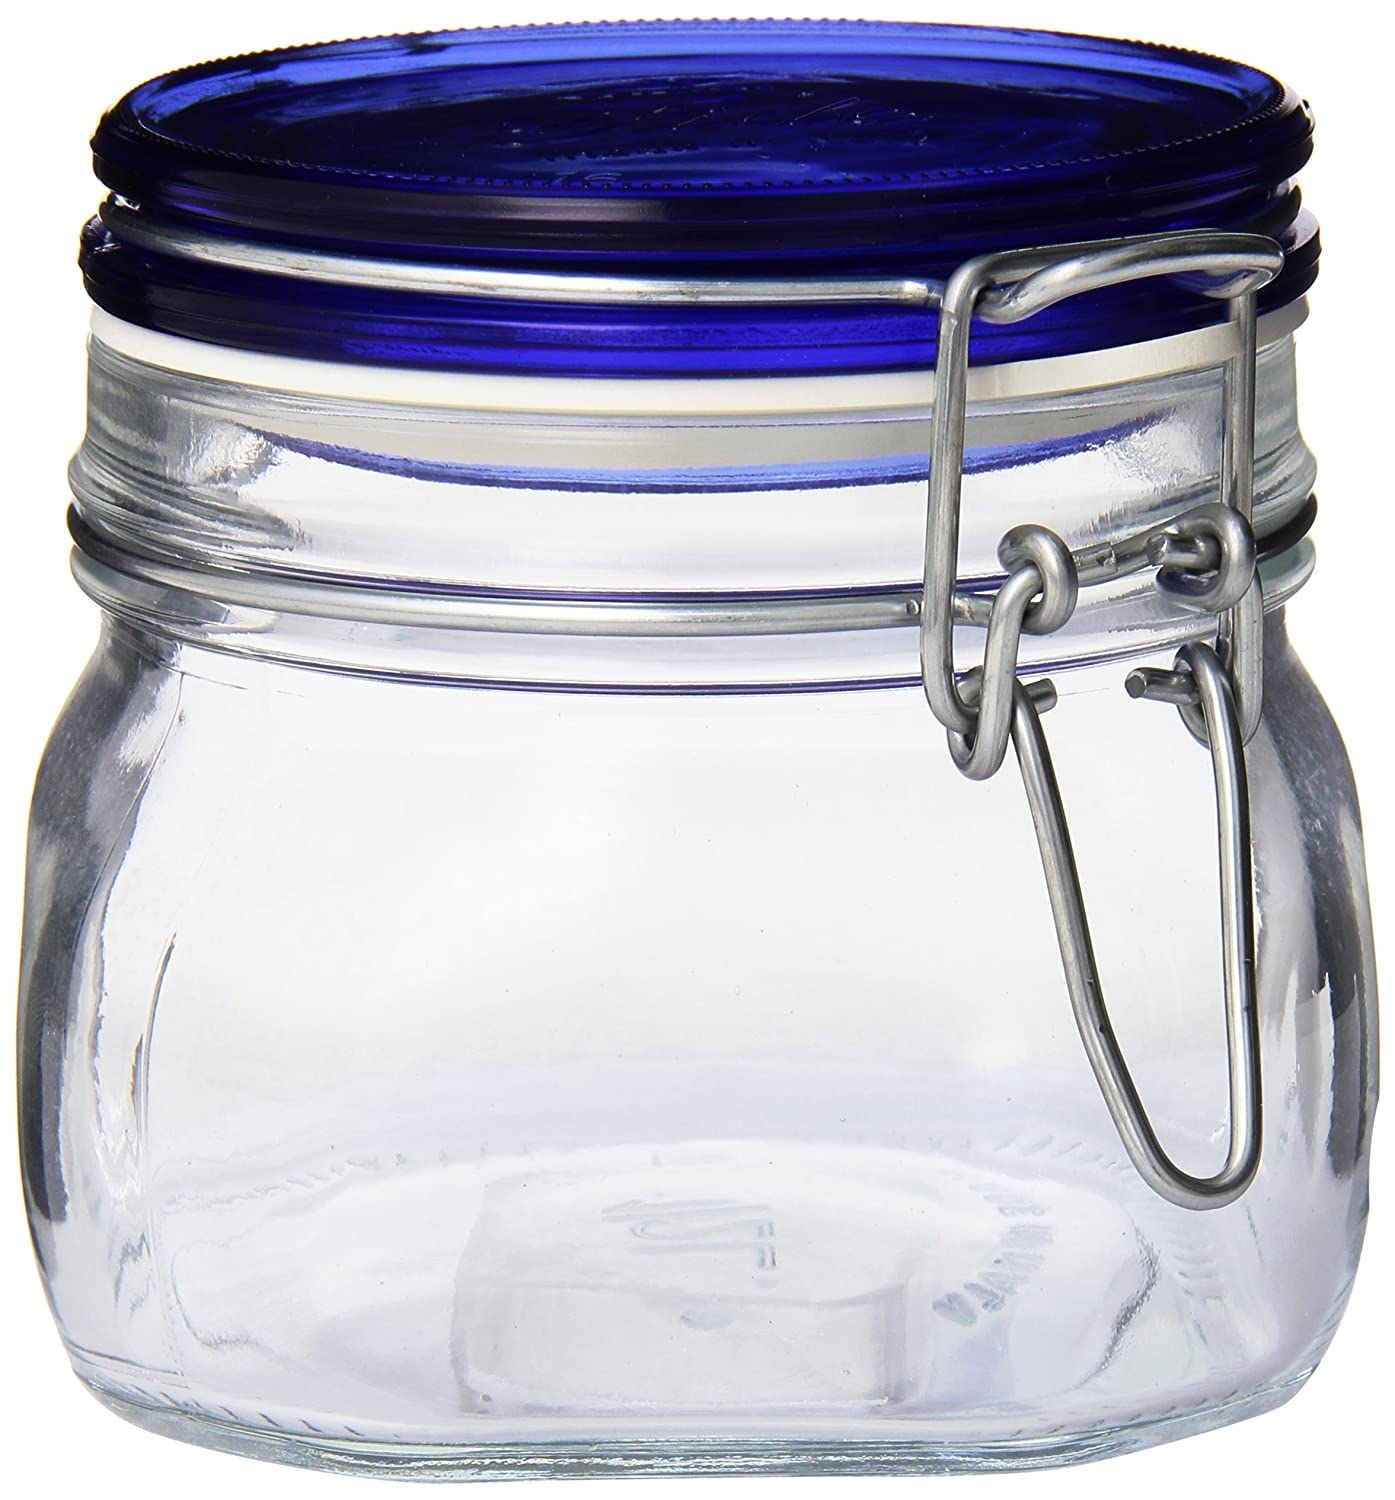 Bormioli Rocco Fido Square Jar with Blue Lid, 17-1/2-Ounce